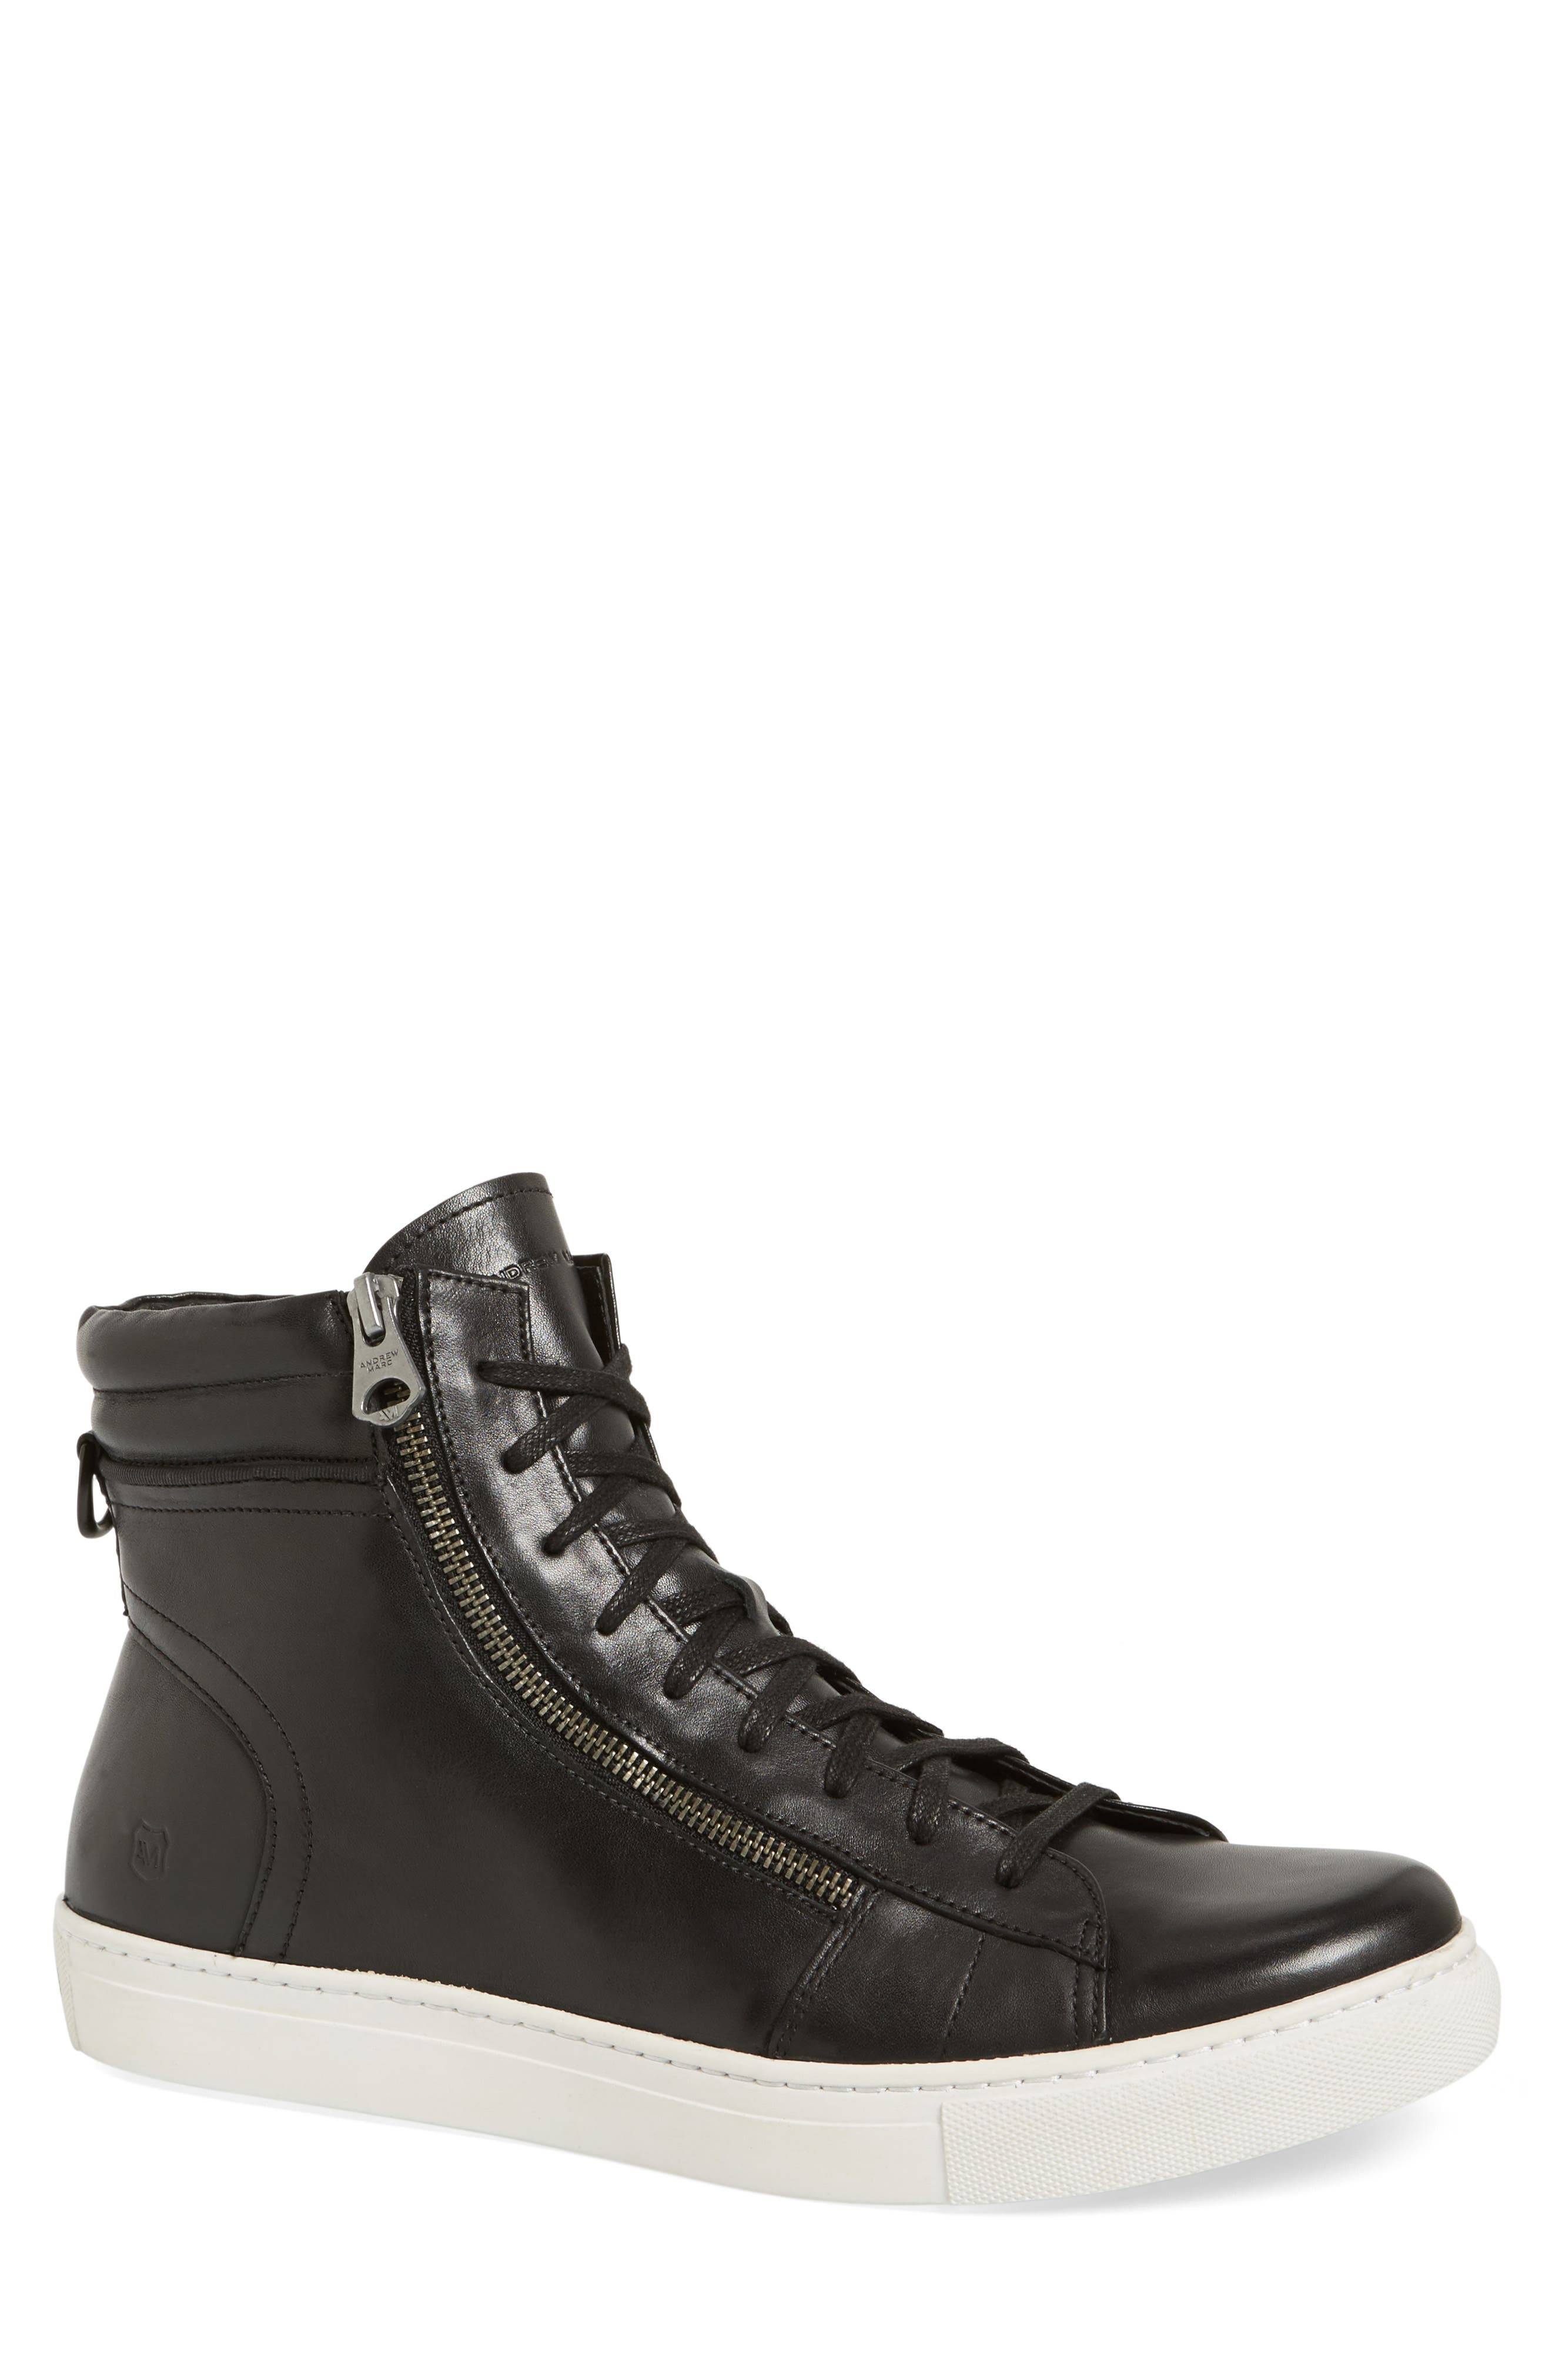 Remsen Sneaker,                         Main,                         color, Black/ White Leather